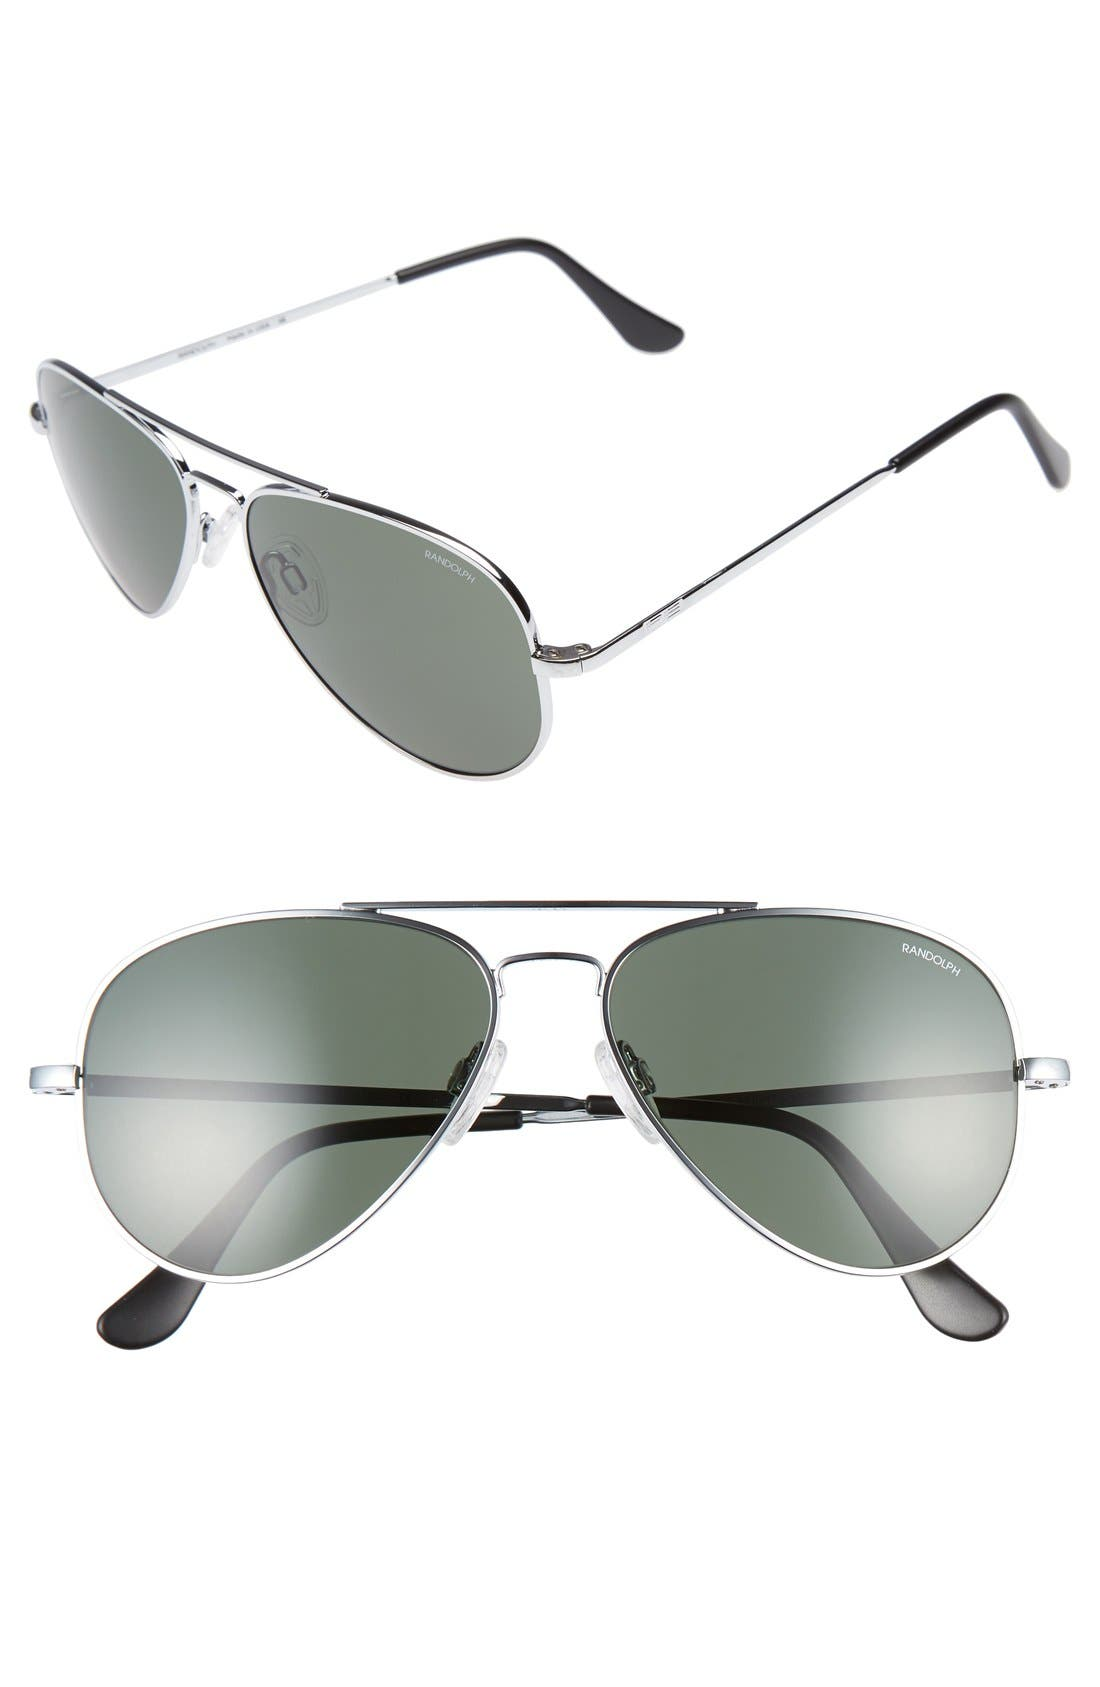 Alternate Image 1 Selected - Randolph Engineering 'Concorde' 57mm Aviator Sunglasses